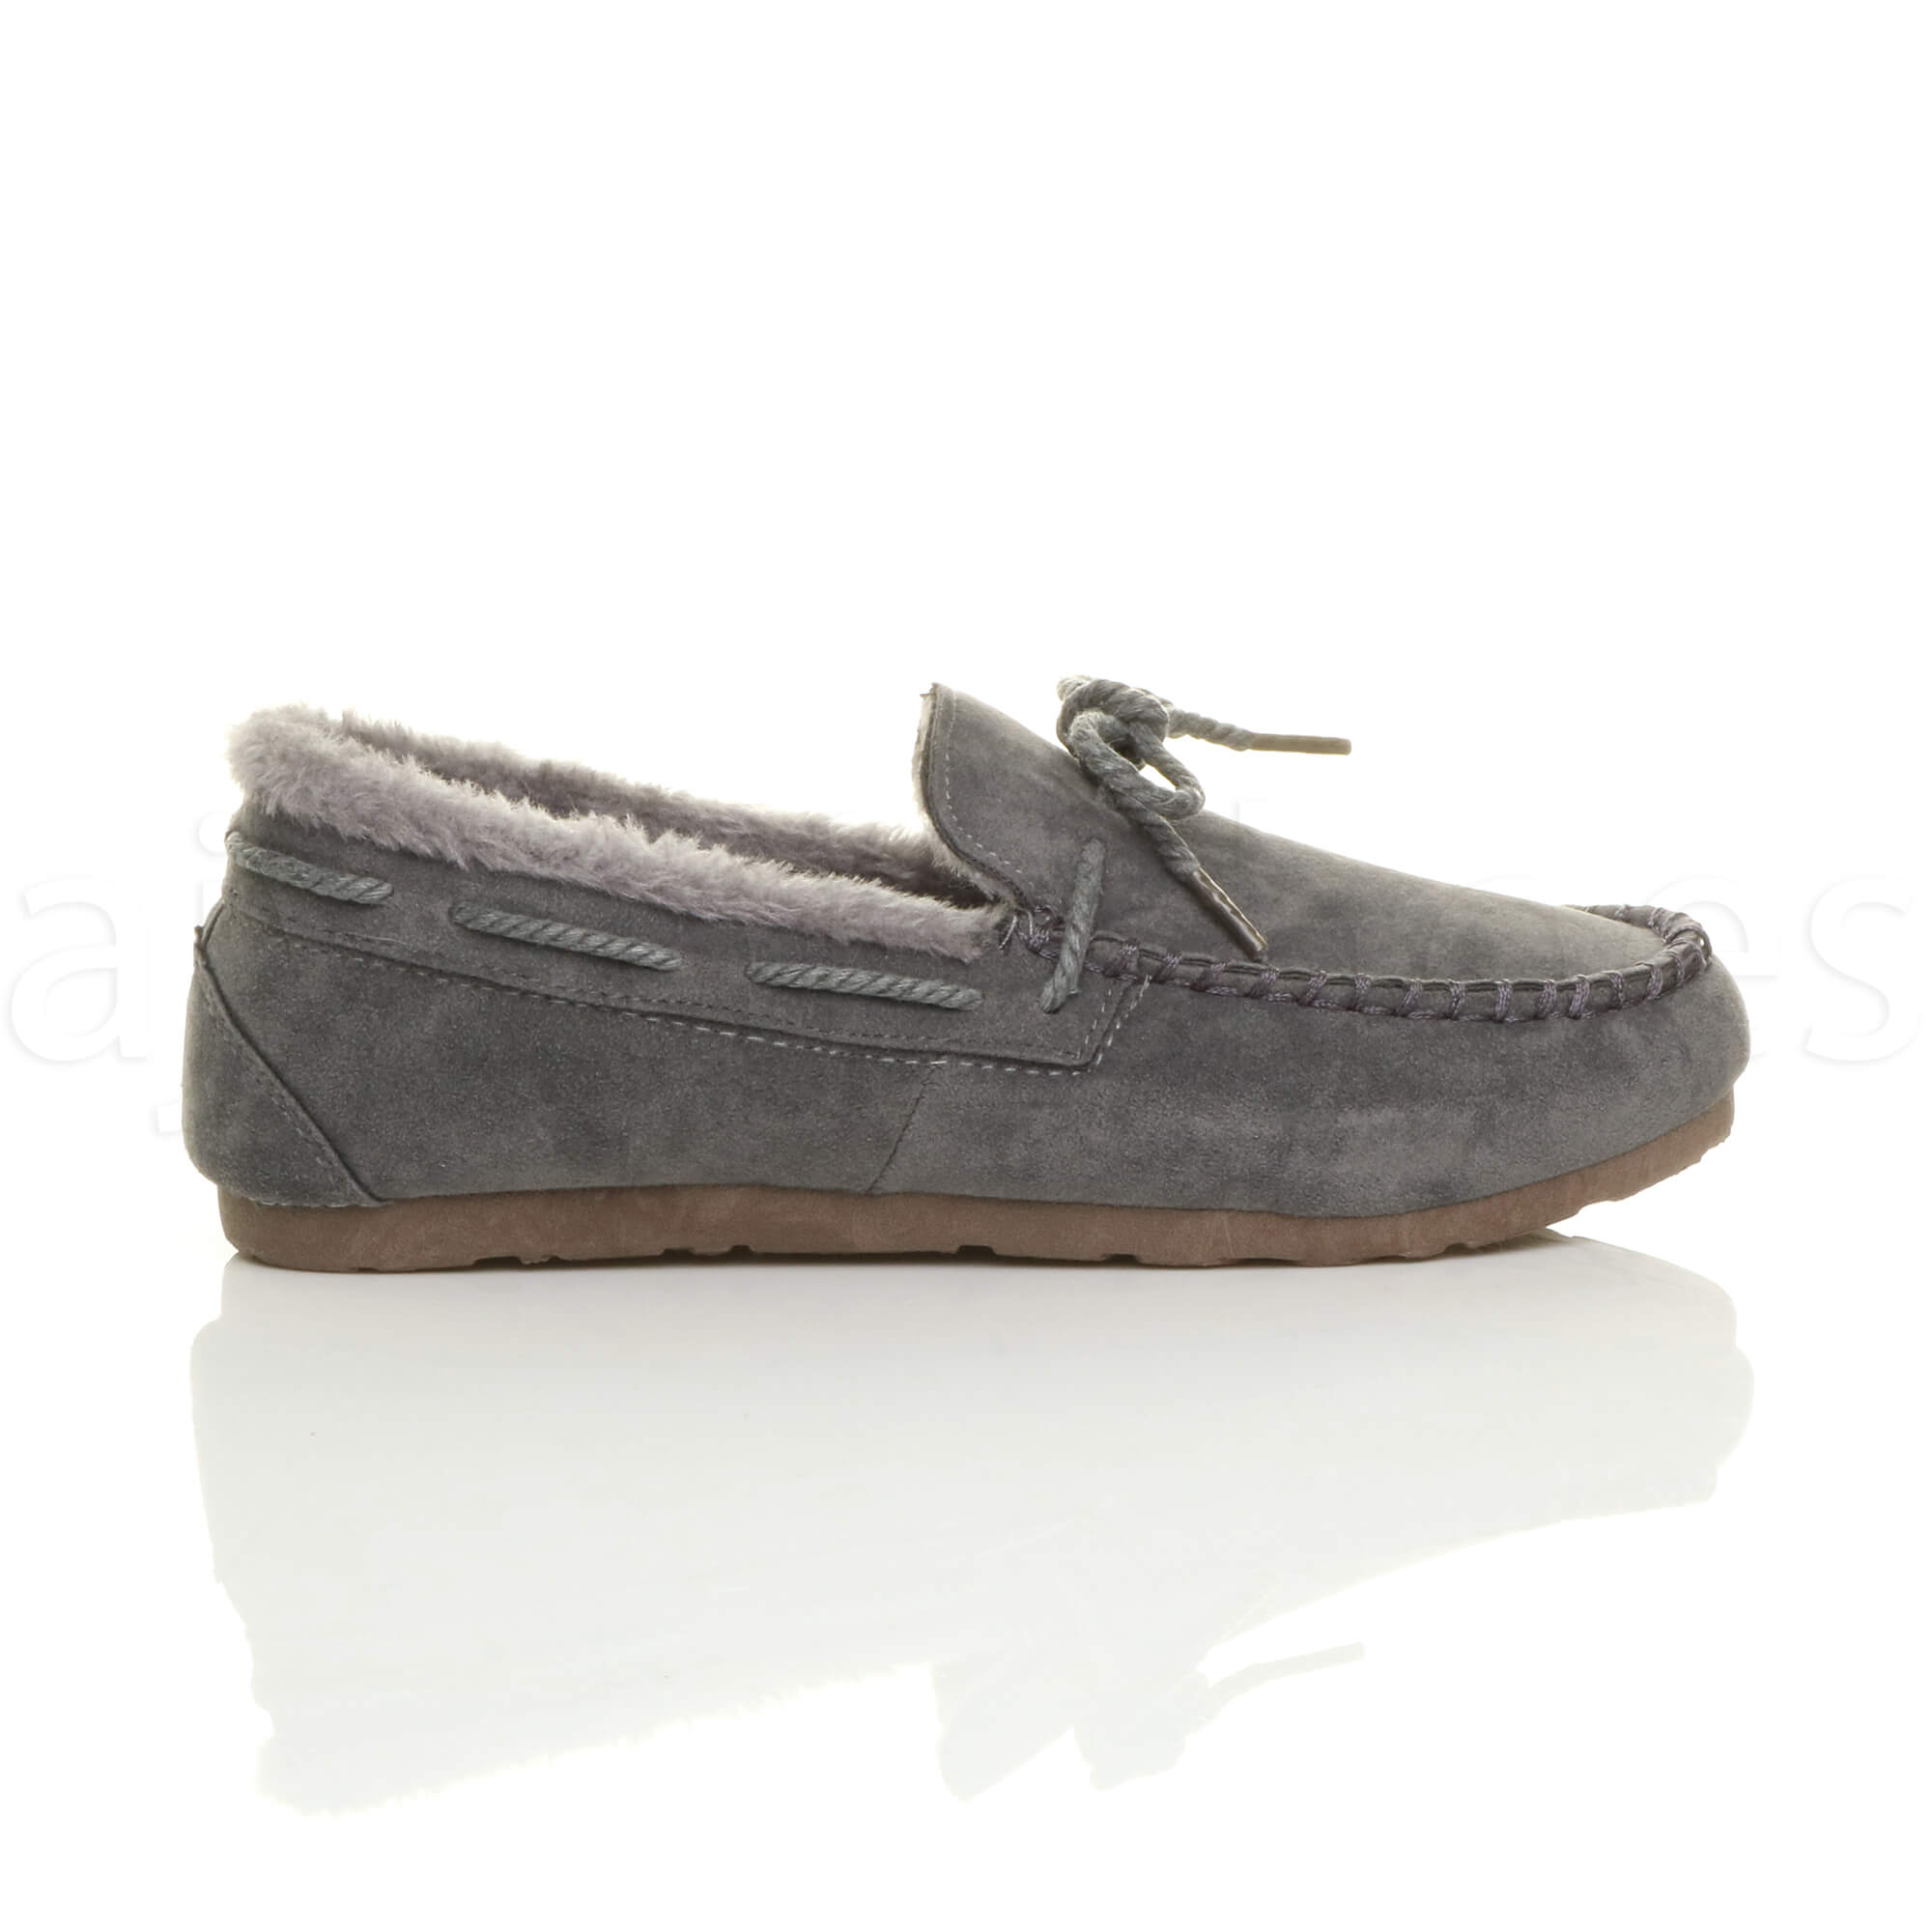 WOMENS-LADIES-FUR-LINED-FLEXIBLE-SOLE-BOW-BOAT-SHOES-MOCCASINS-SLIPPERS-SIZE